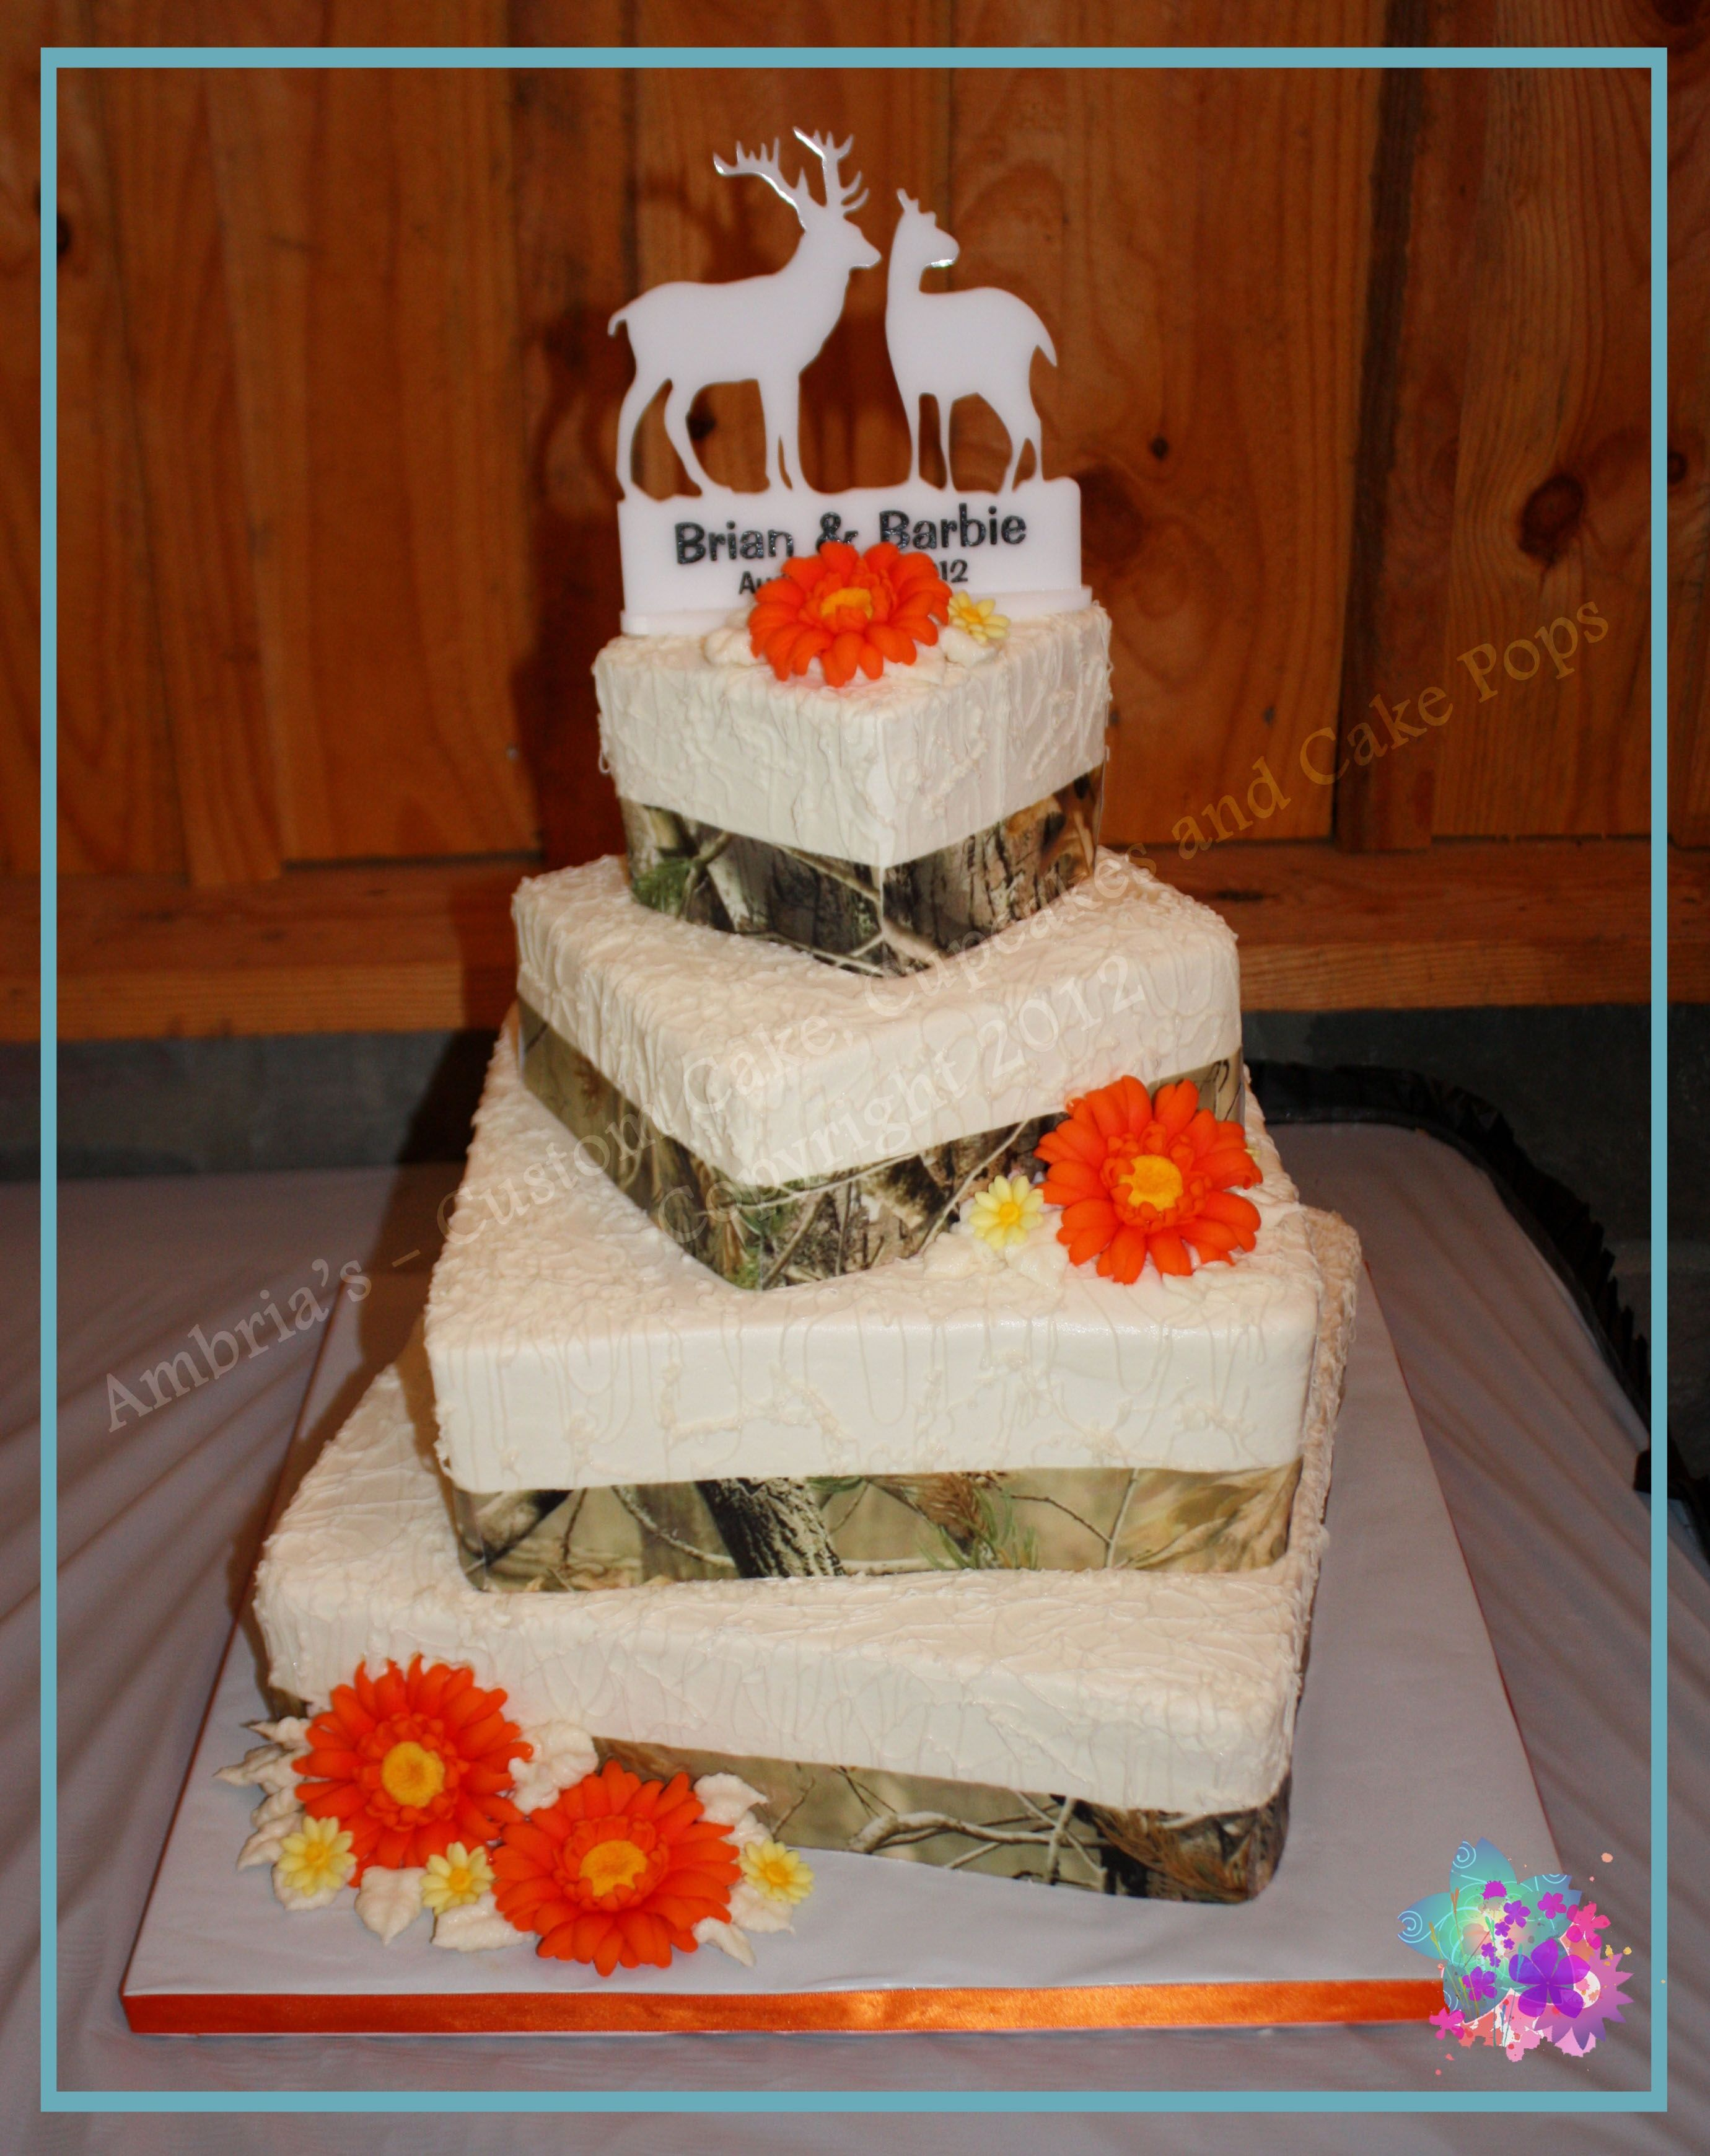 Camo Wedding Iced In Vanilla Buttercream With Piped Icing Texture